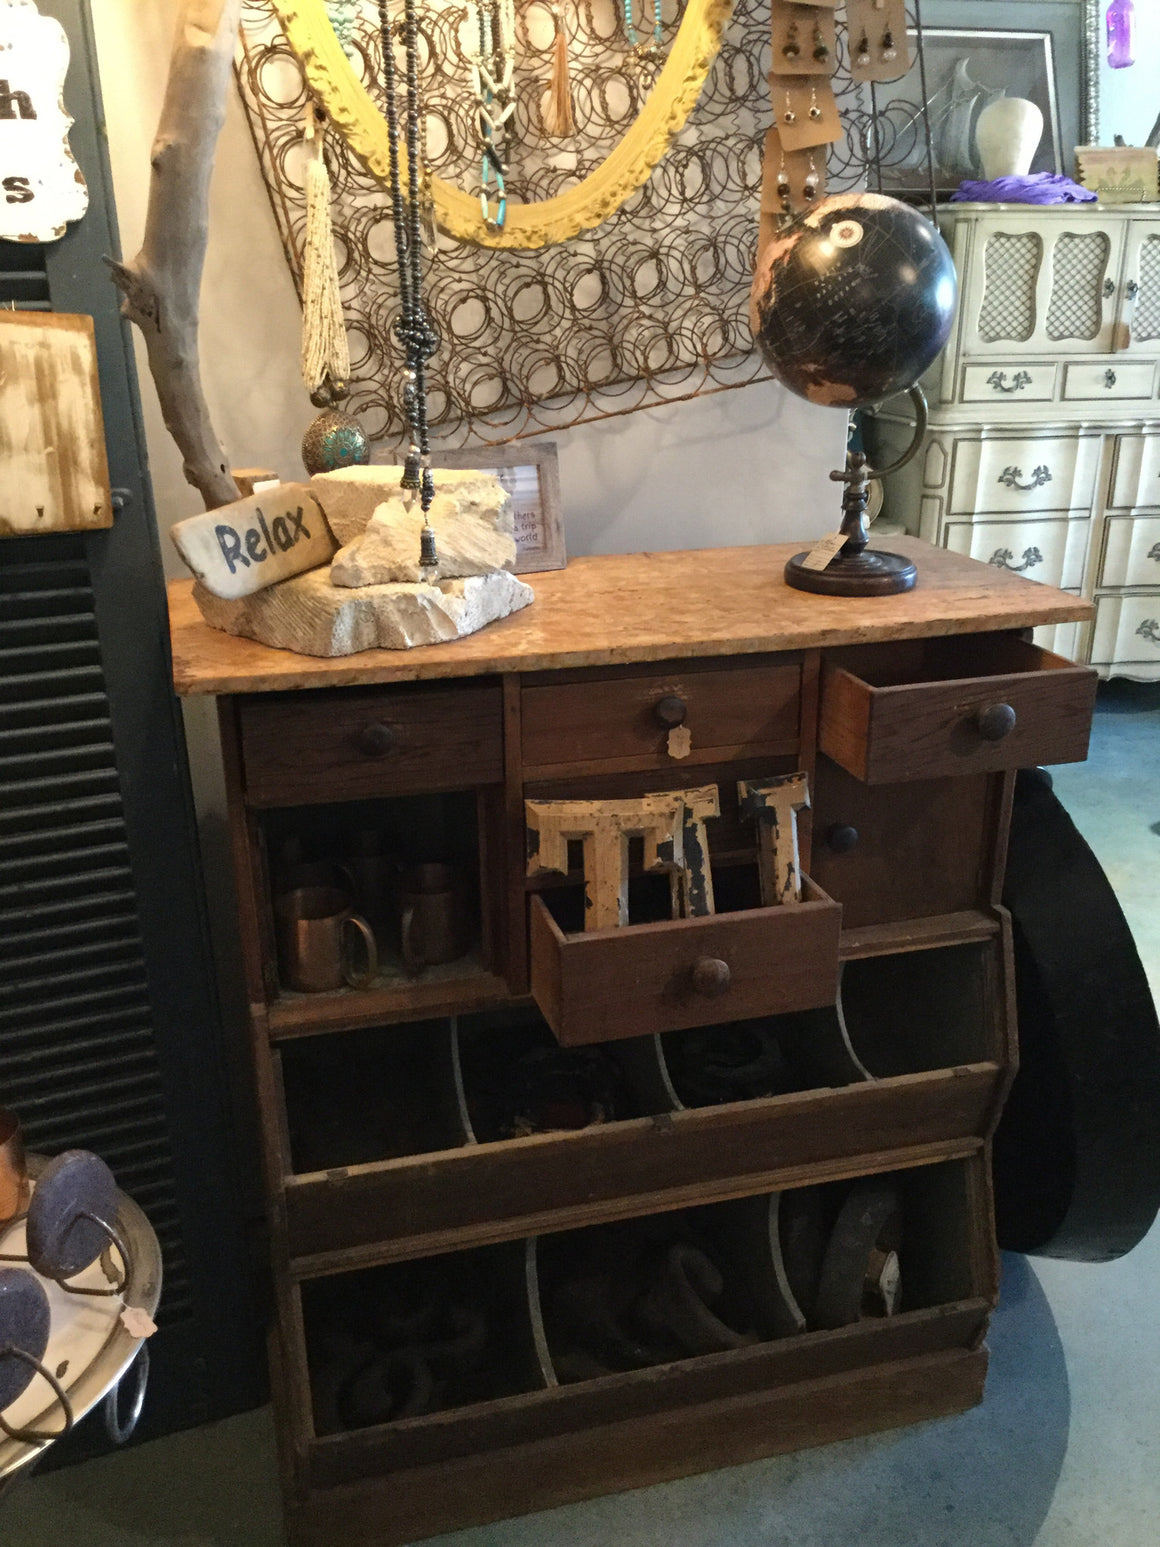 Repurposed General Store Display Case - VINTAGE JOURNEY MARKET - Upcycling & Restoration